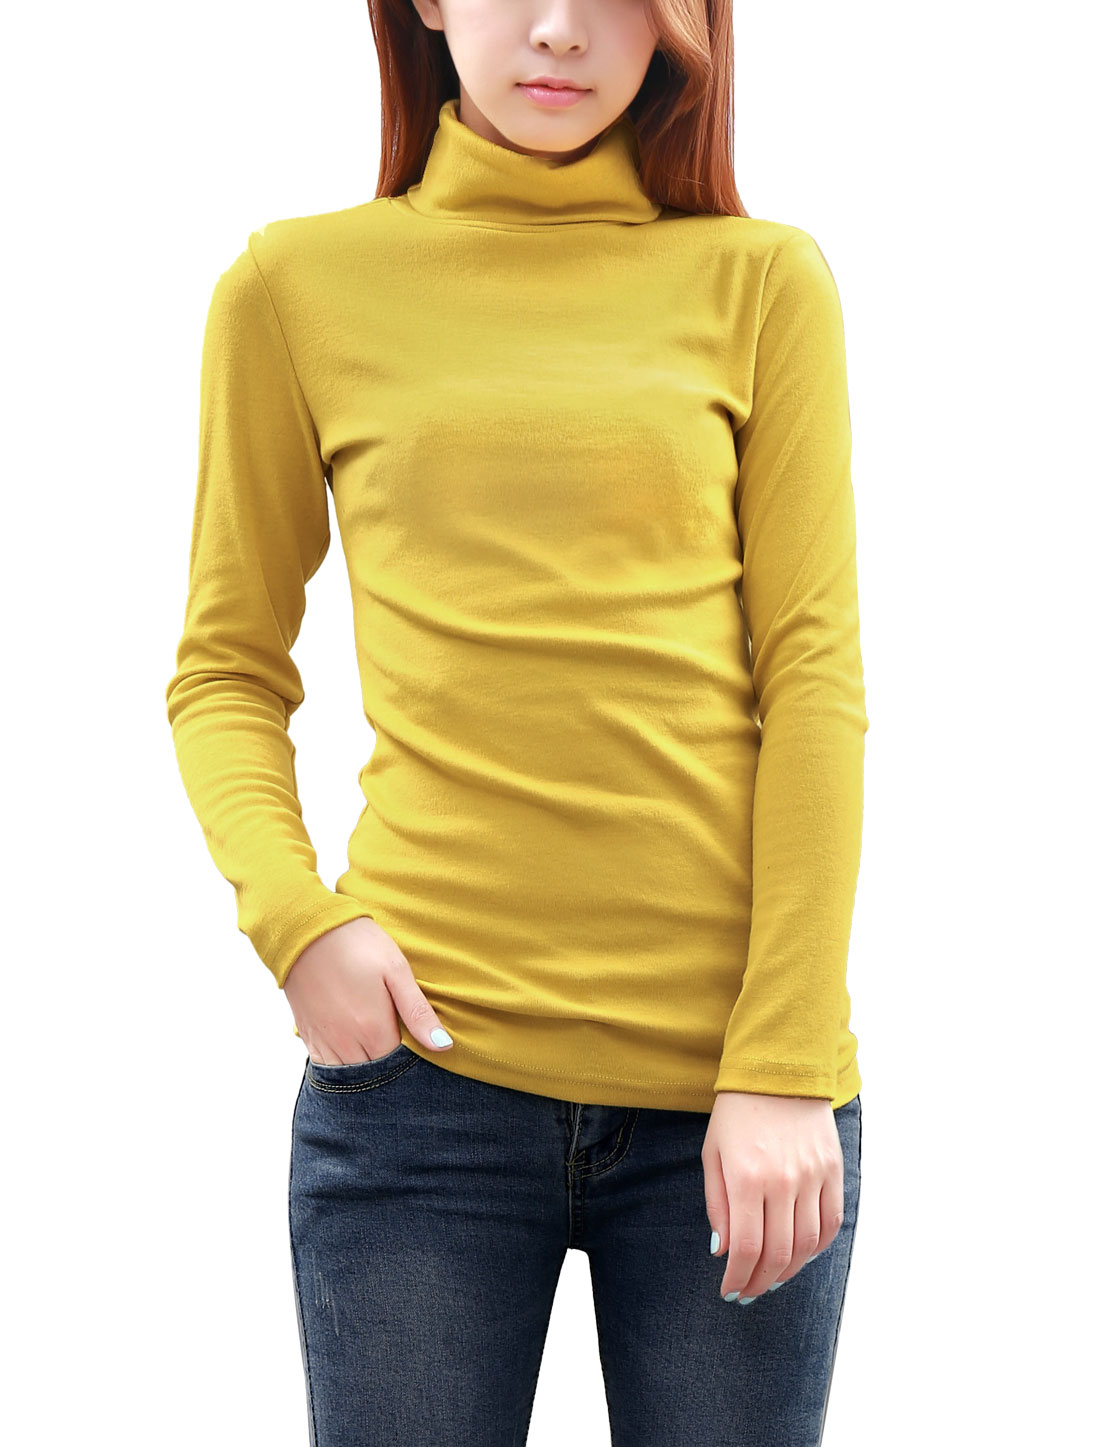 Women Cozy Fit Slipover Design Long Sleeve Autumn Knit Top Yellow L